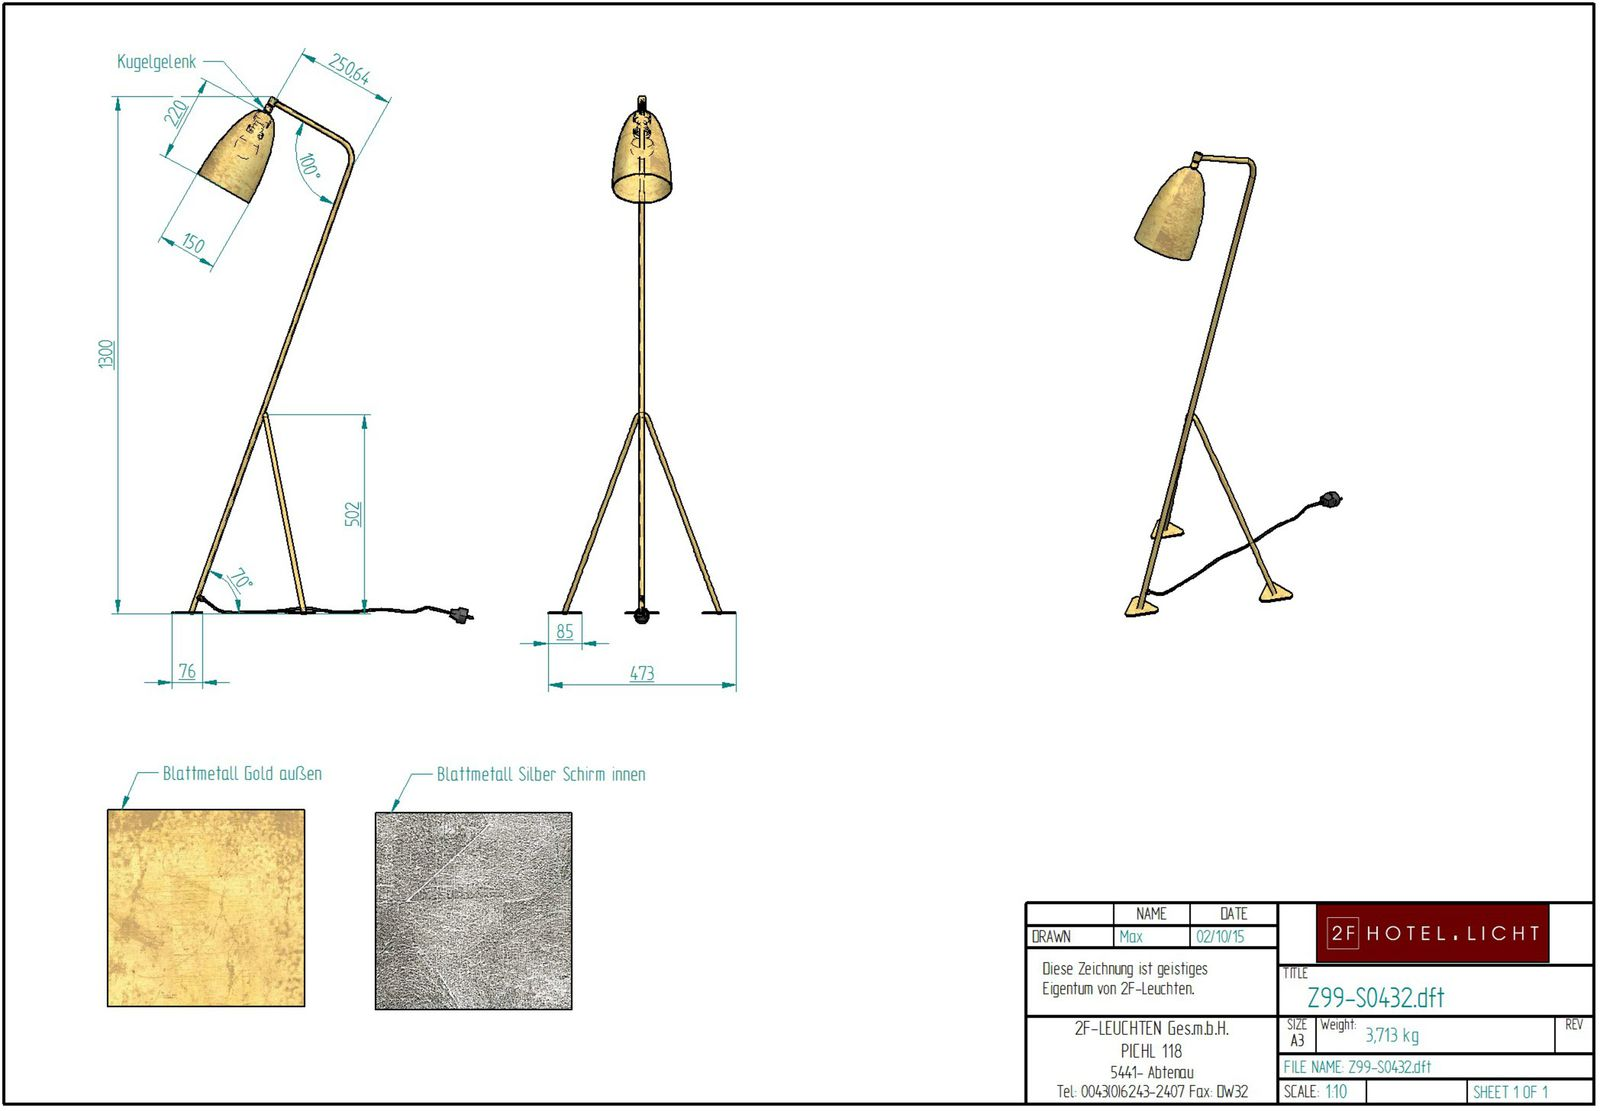 floor lamp, L:354mm, wide:364mm, H:1300mm, surface: metal, techn. data: E27, 28W, A60, 230V, cable colour: black